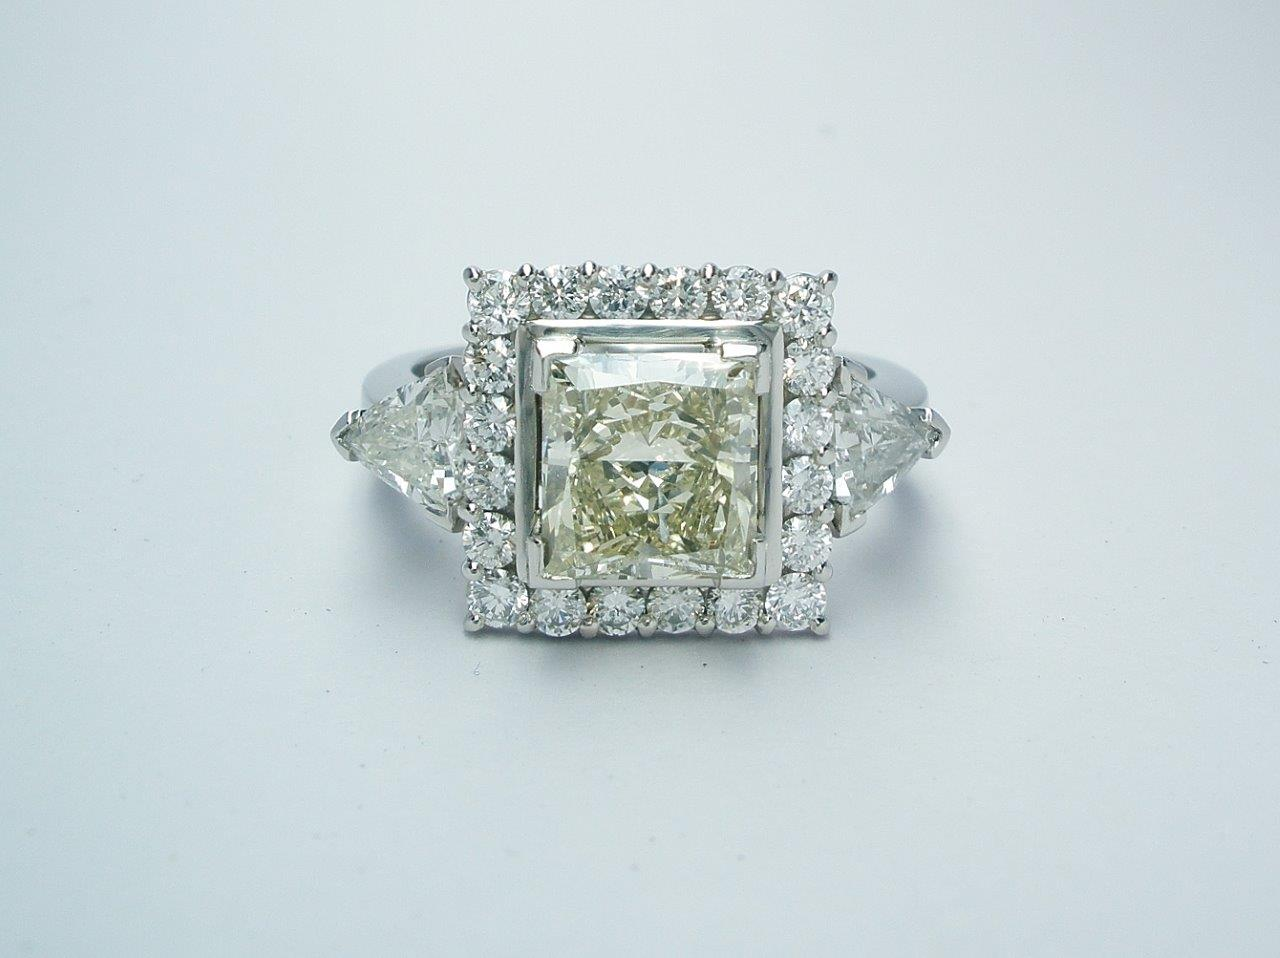 The 2ct. champagne princess cut diamond mounted centrally in a part channel set white round brilliant cut square 'Halo' cluster platinum ring with the white trilliant diamonds set on the outside shoulders.